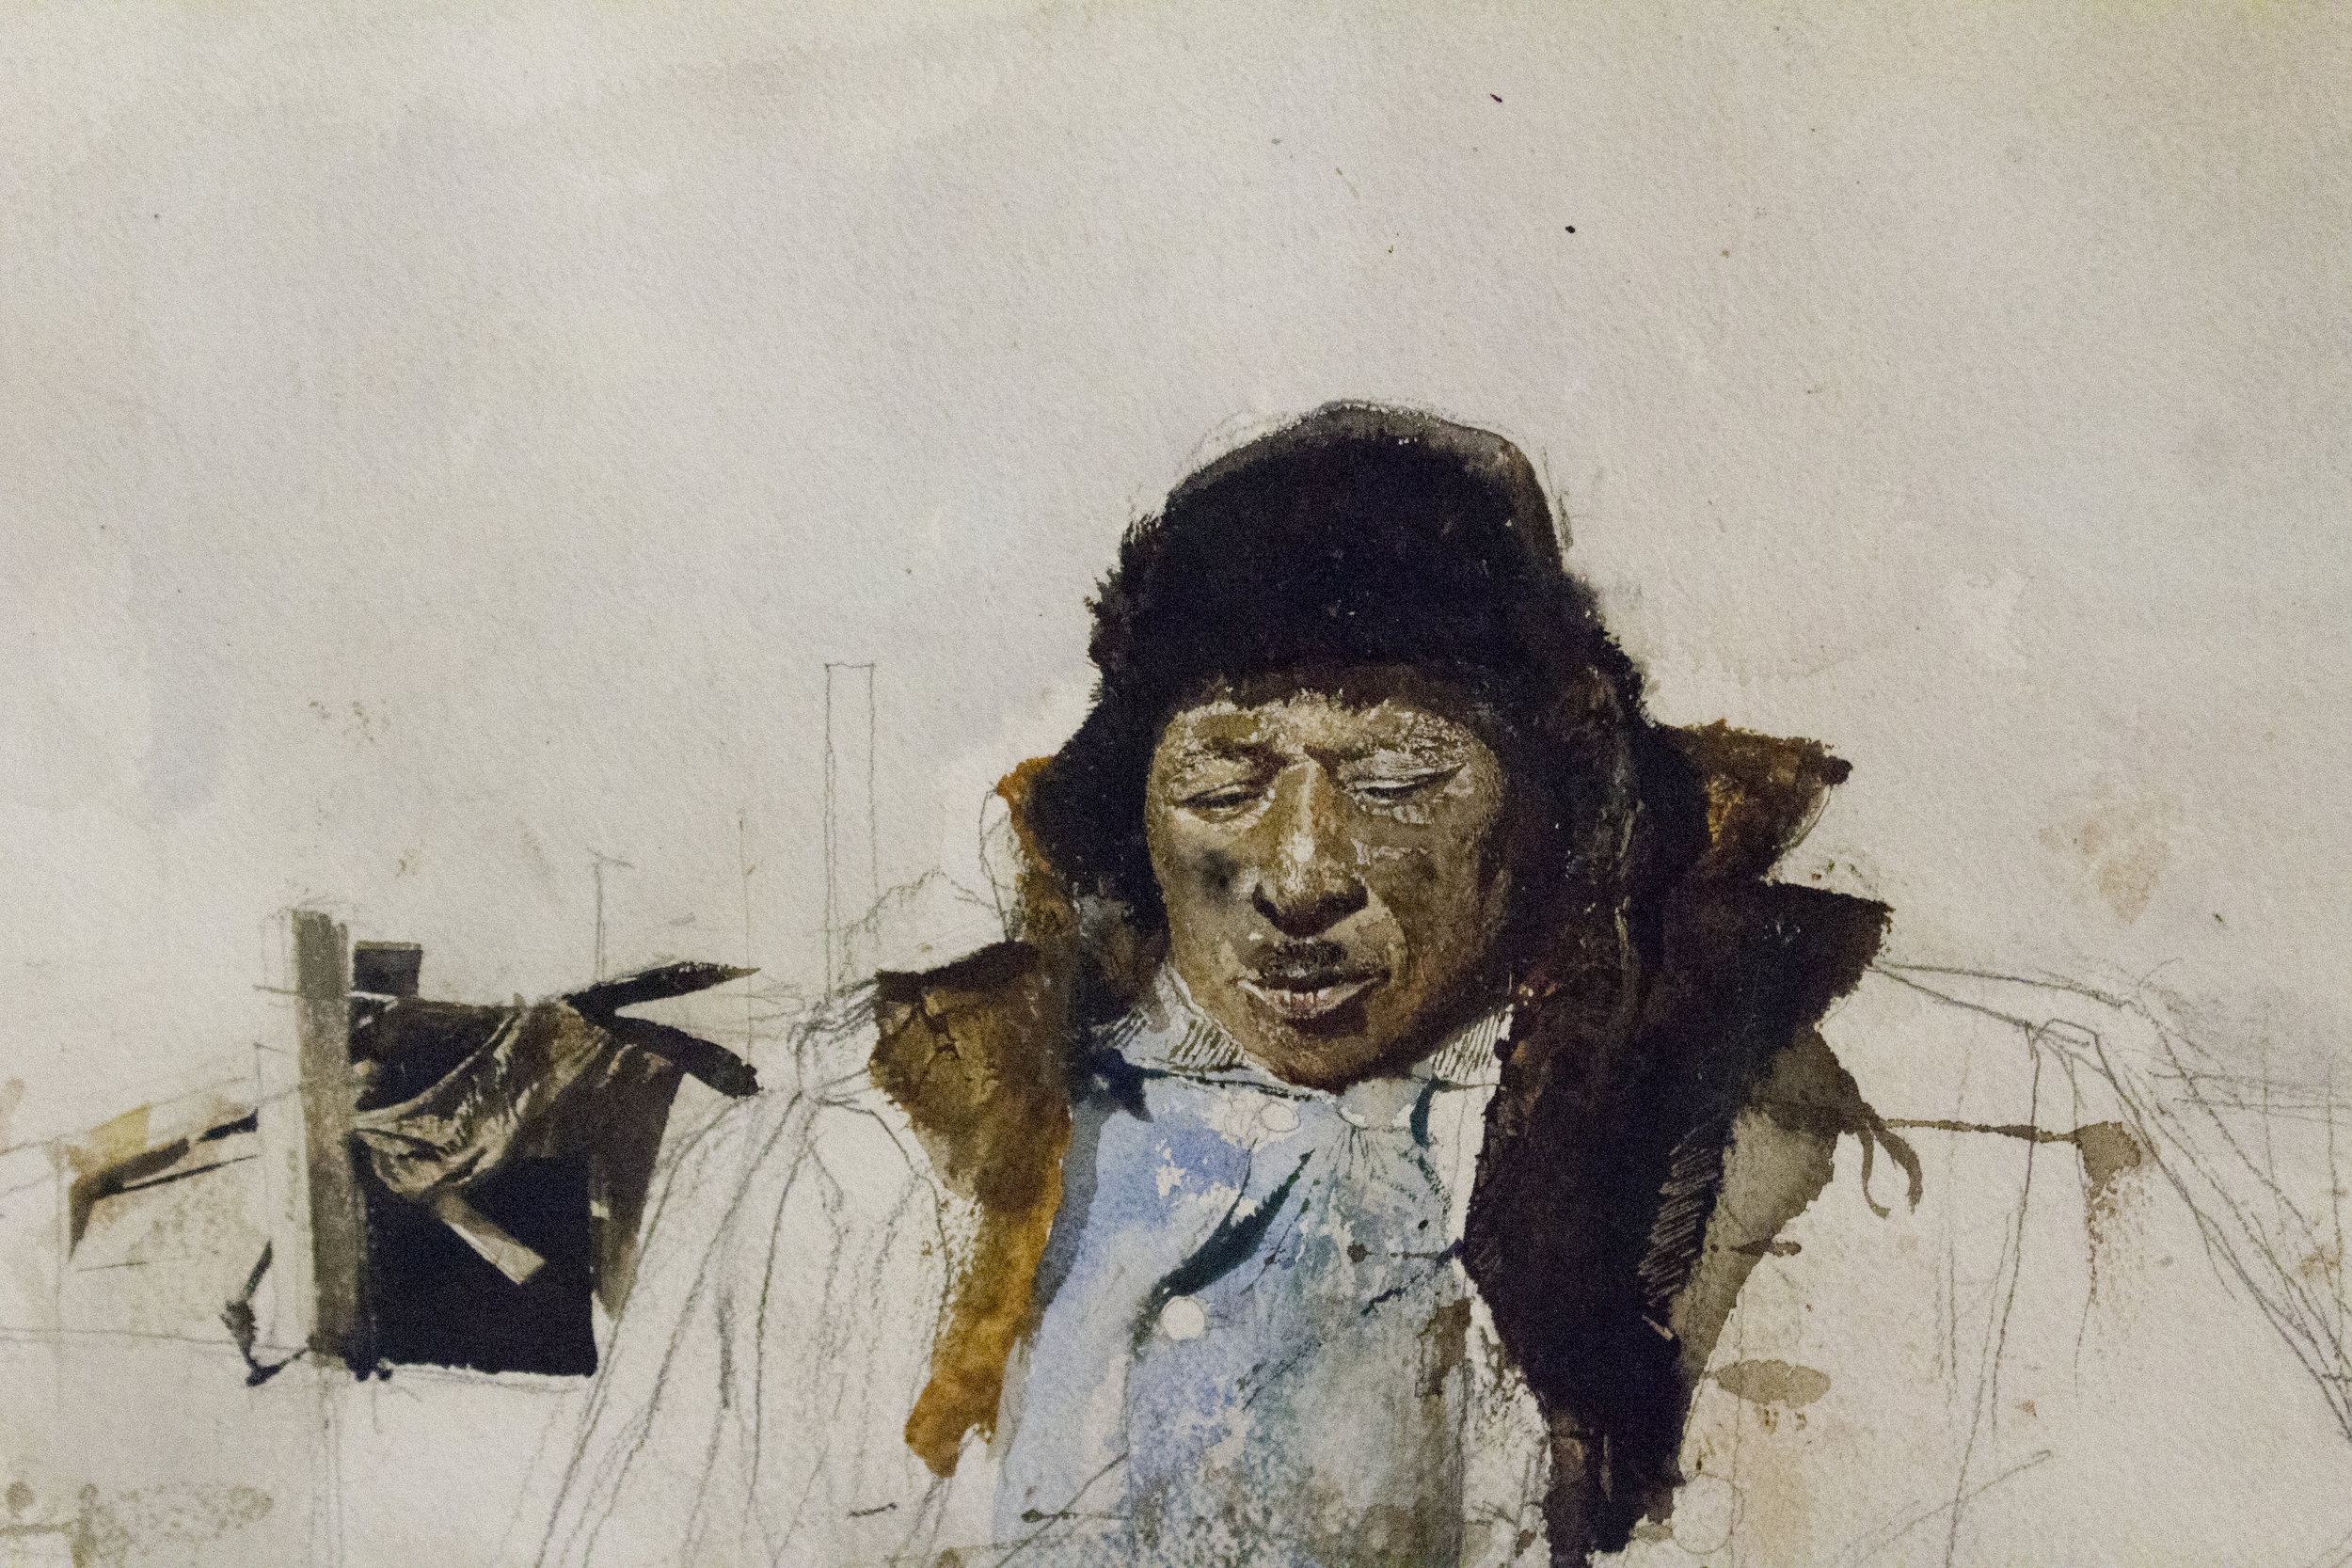 (Study for) Adam, 1963, Watercolor on paper. Andrew Wyeth. The Brandywine River Museum of Art. Image courtesy of author.